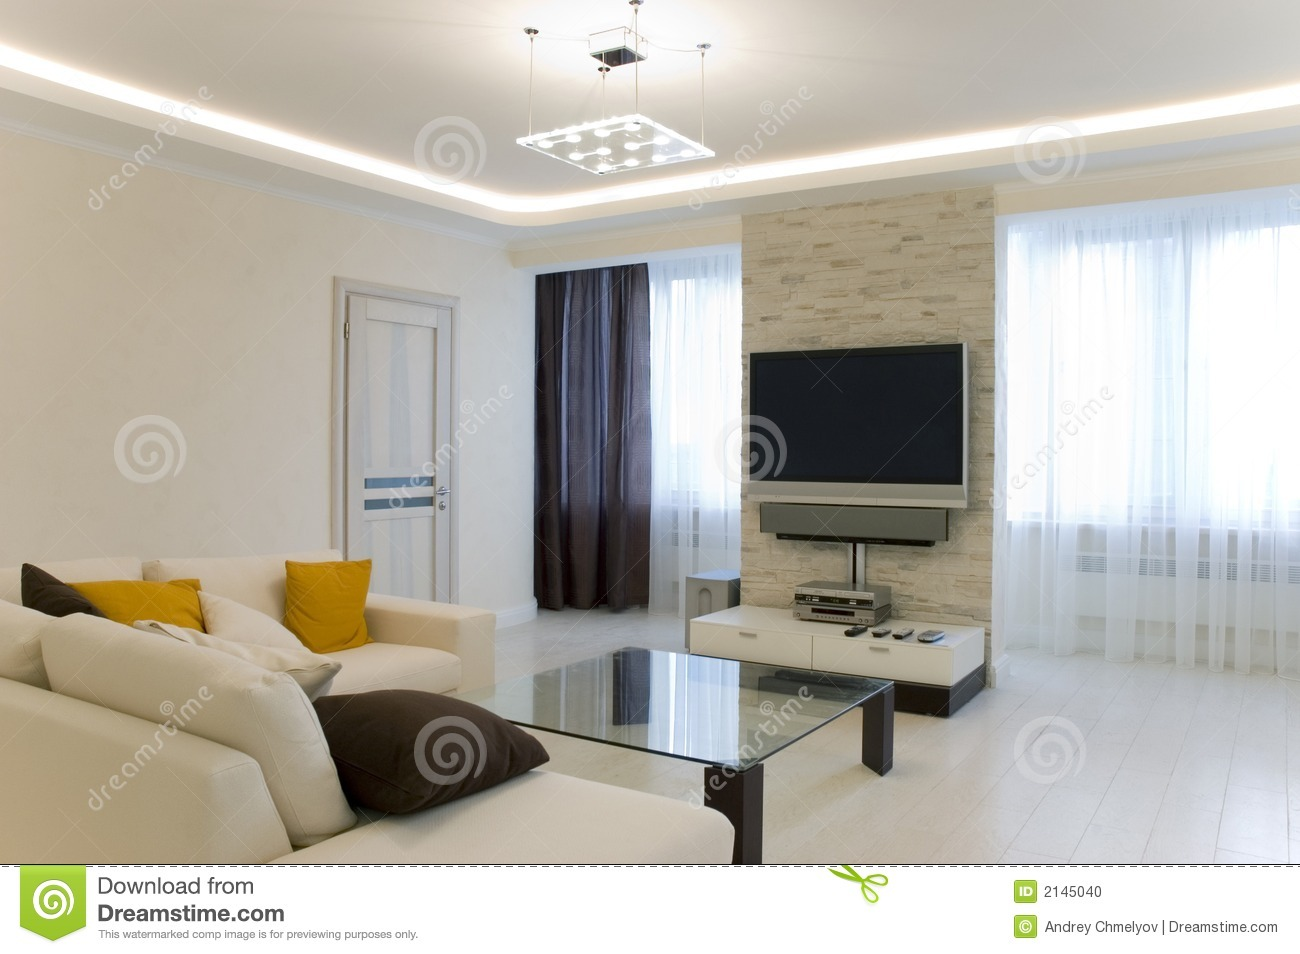 Hall with tv and sofa stock photo image of modern contemporaneous 2145040 for Images of couch for hall rennes